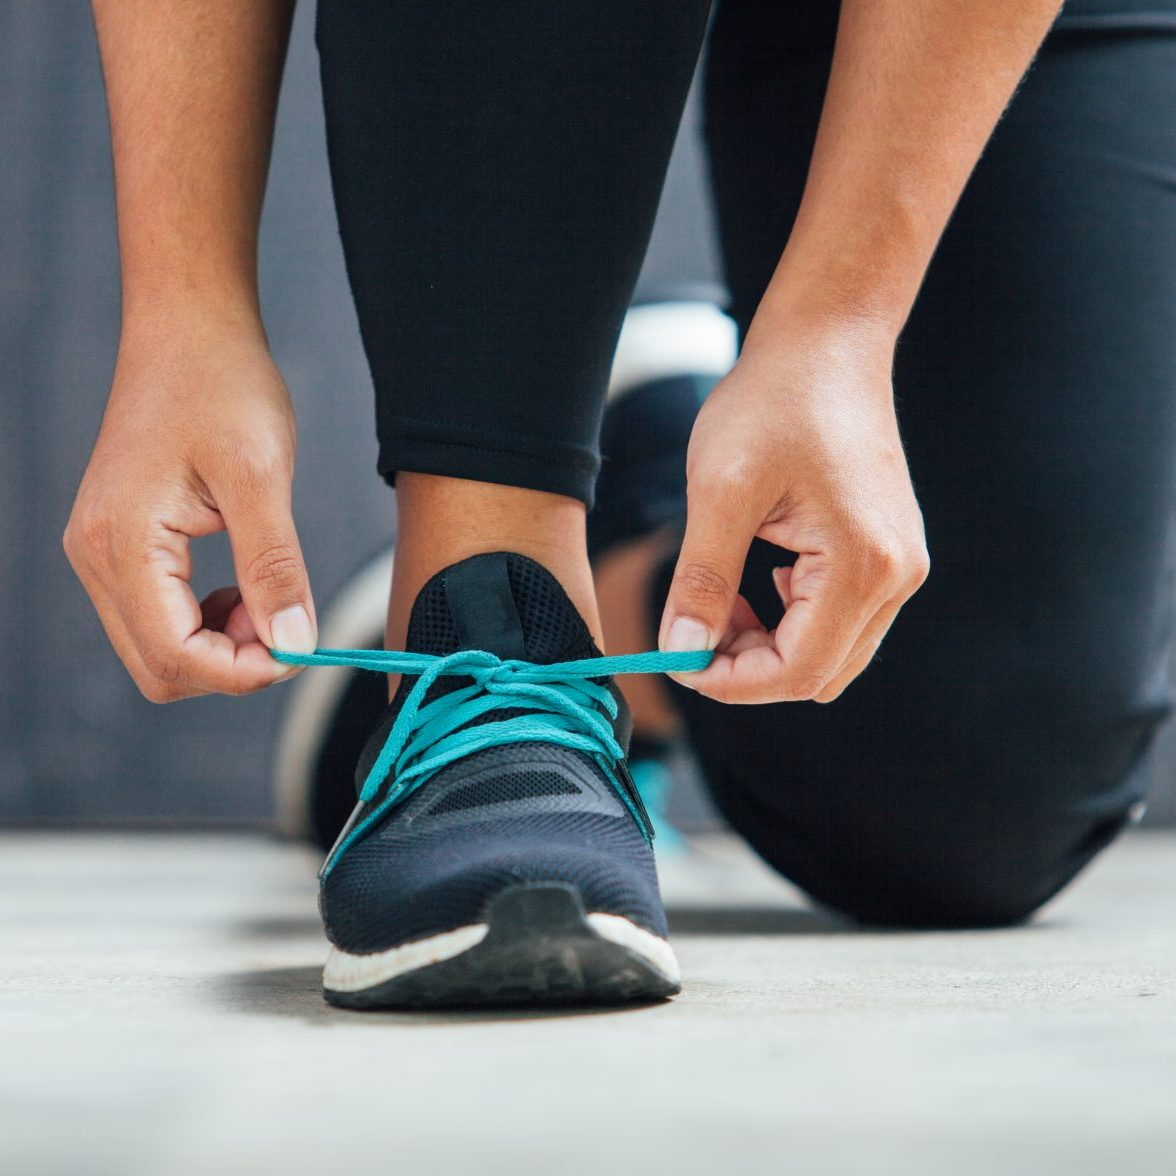 Female runner tying her shoes preparing for a run